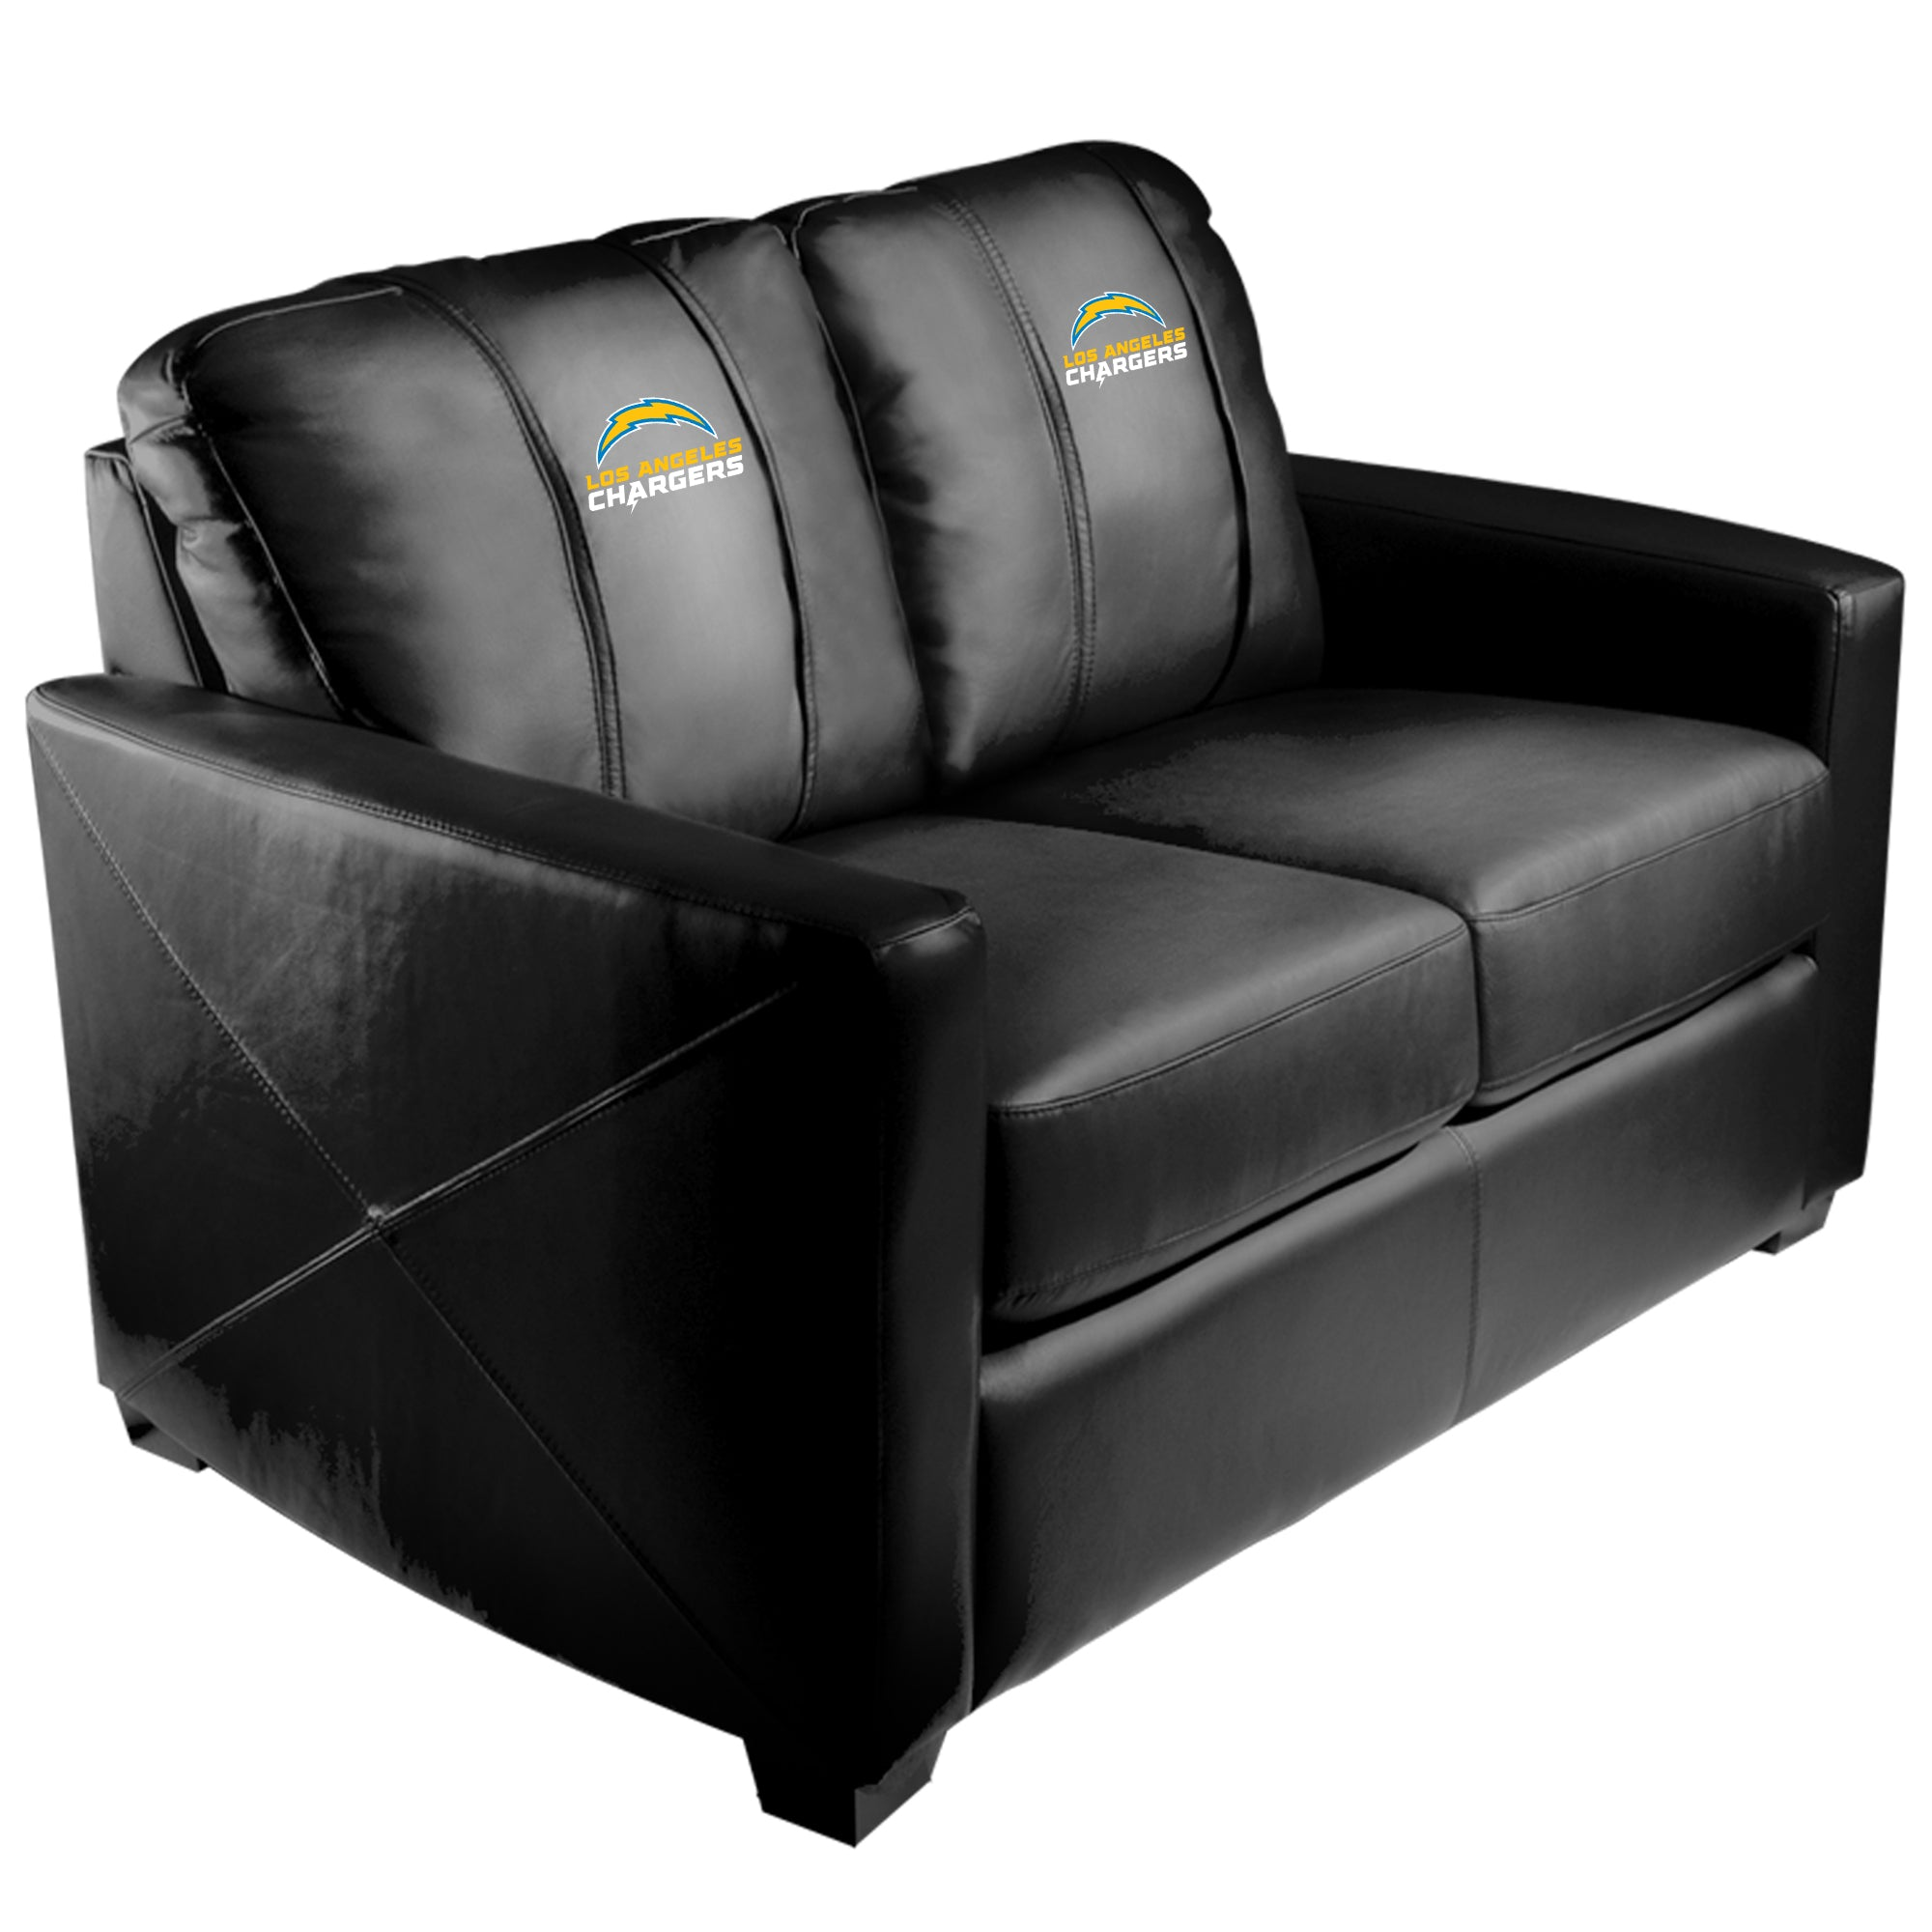 Silver Loveseat with  Los Angeles Chargers Secondary Logo